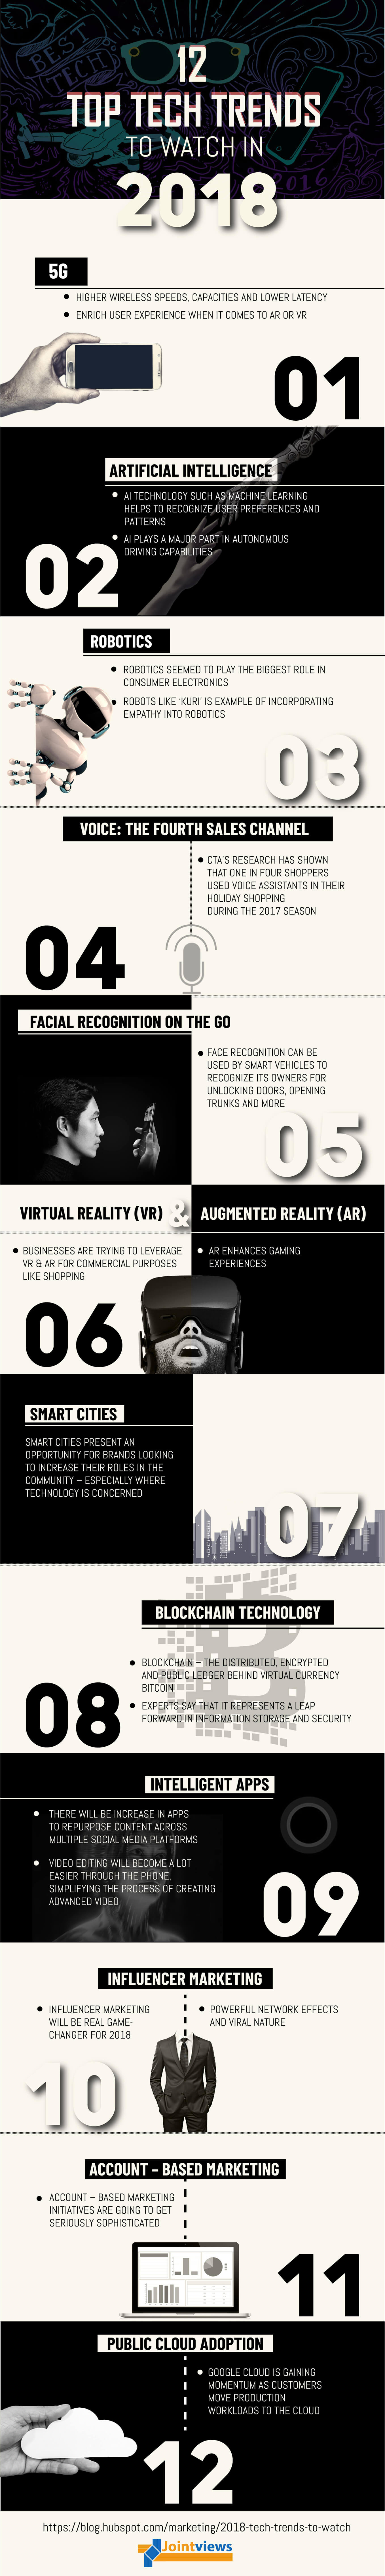 12-Top-Tech-Trends-to-Watch-in-2018-infographic-plaza